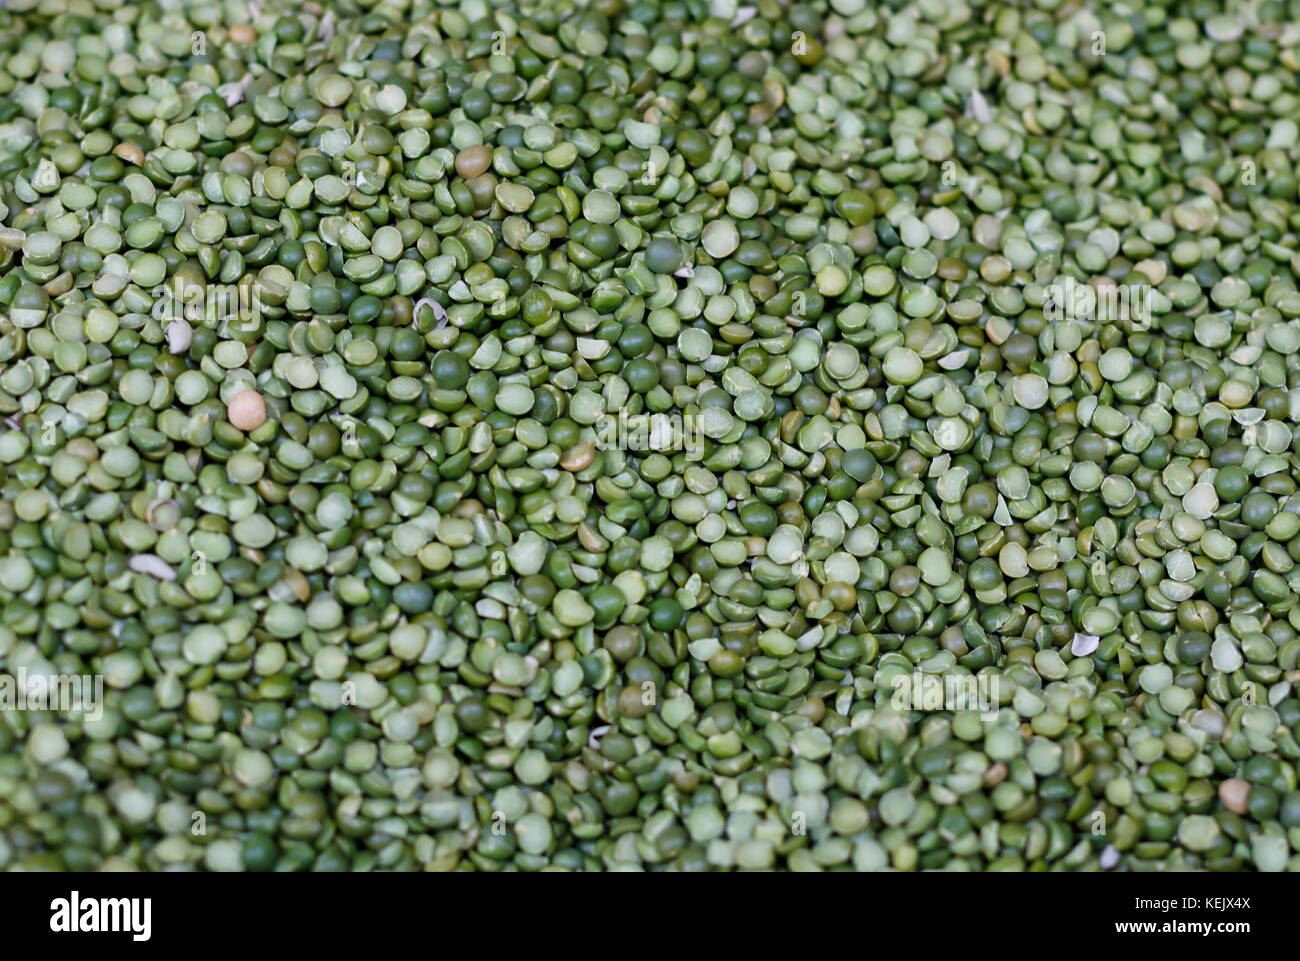 Dry Green Split Peas at a Produce Stand. - Stock Image